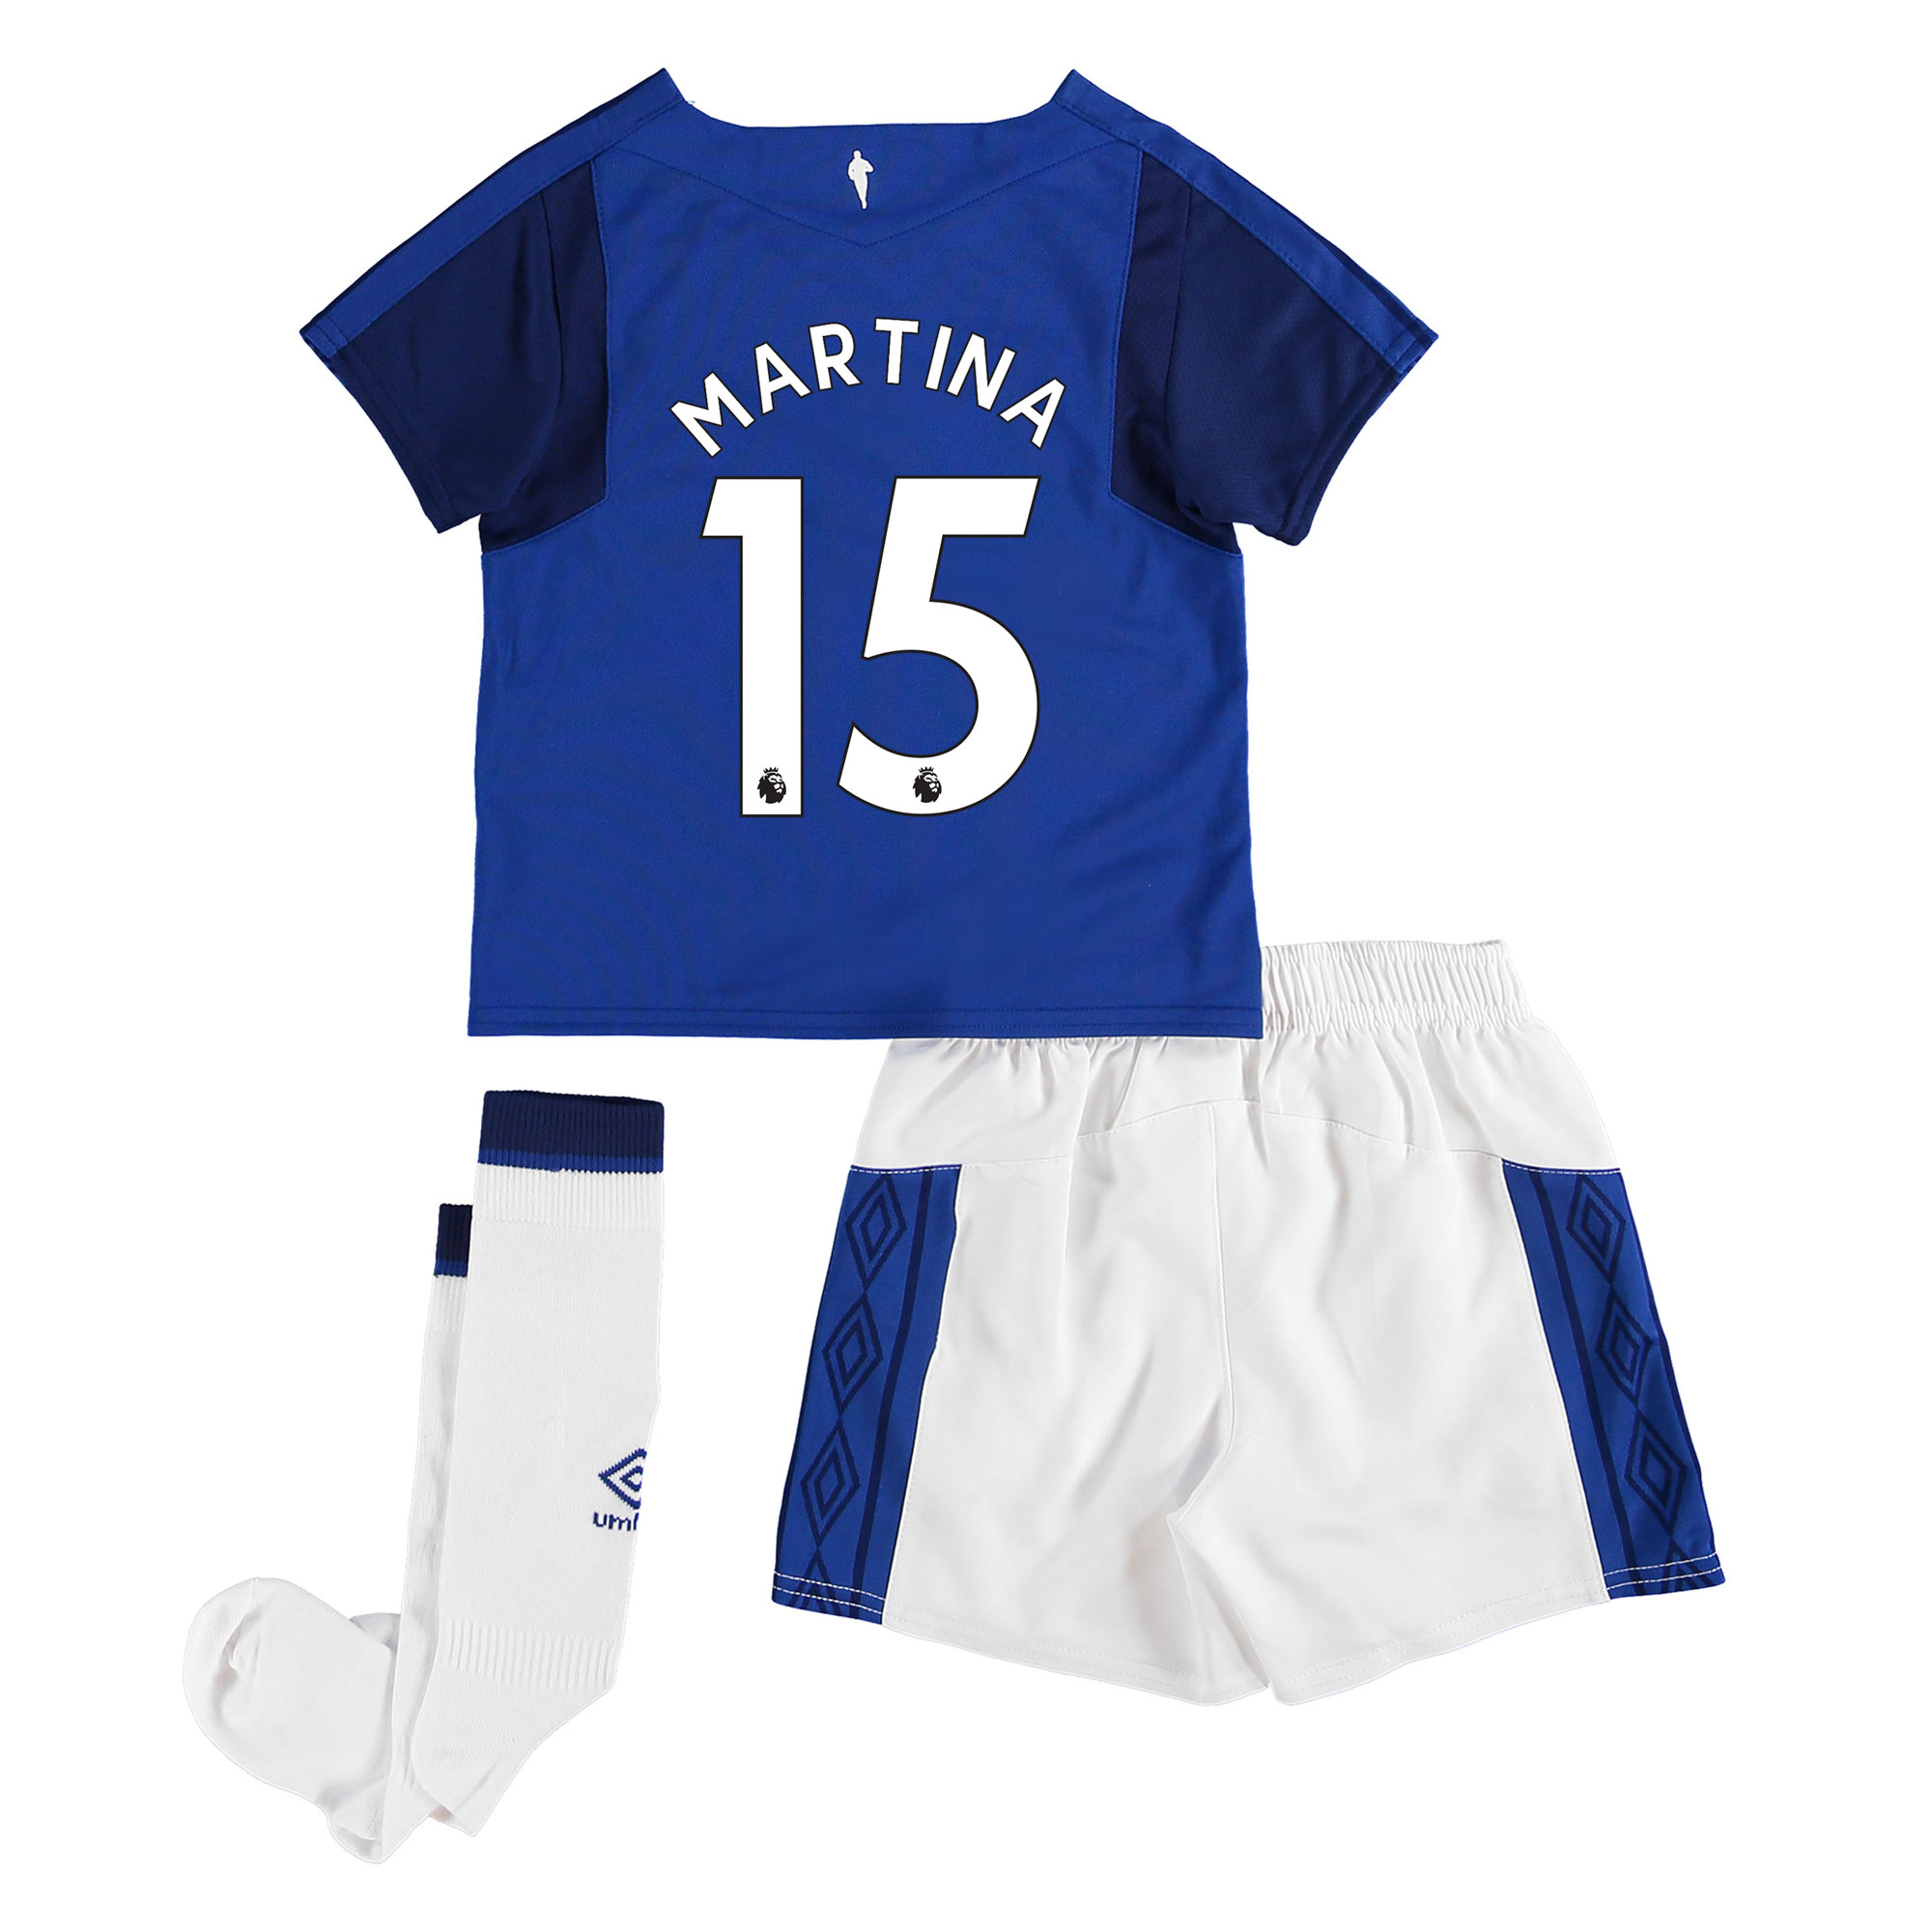 Everton Home Infant Kit 2017/18 with Martina 15 printing